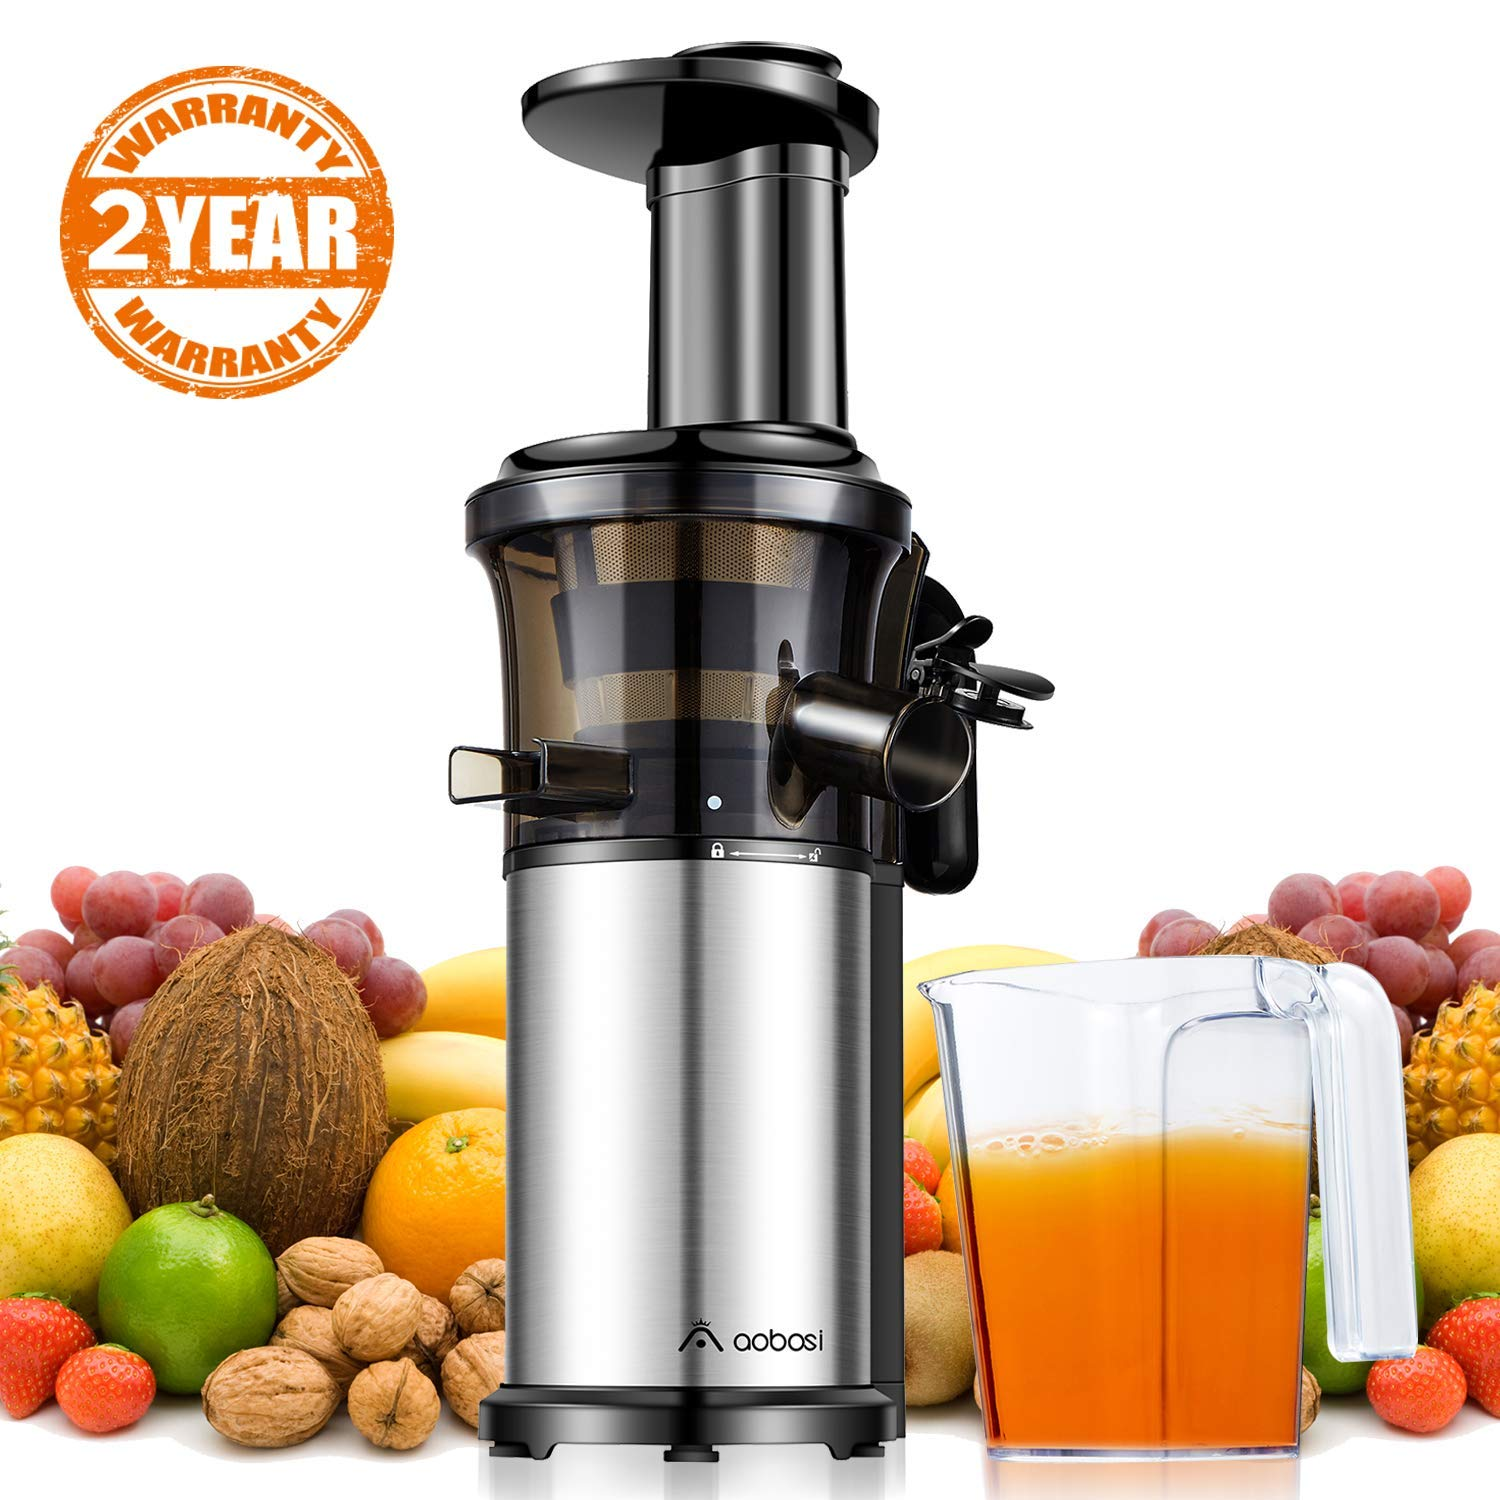 Aobosi Slow Masticating Juicer Extractor Compact Cold Press Juicer Machine with Portable Handle/Quiet Motor/Reverse Function/Juice Jug and Clean Brush for High Nutrient Fruit & Vegetable Juice by AAOBOSI